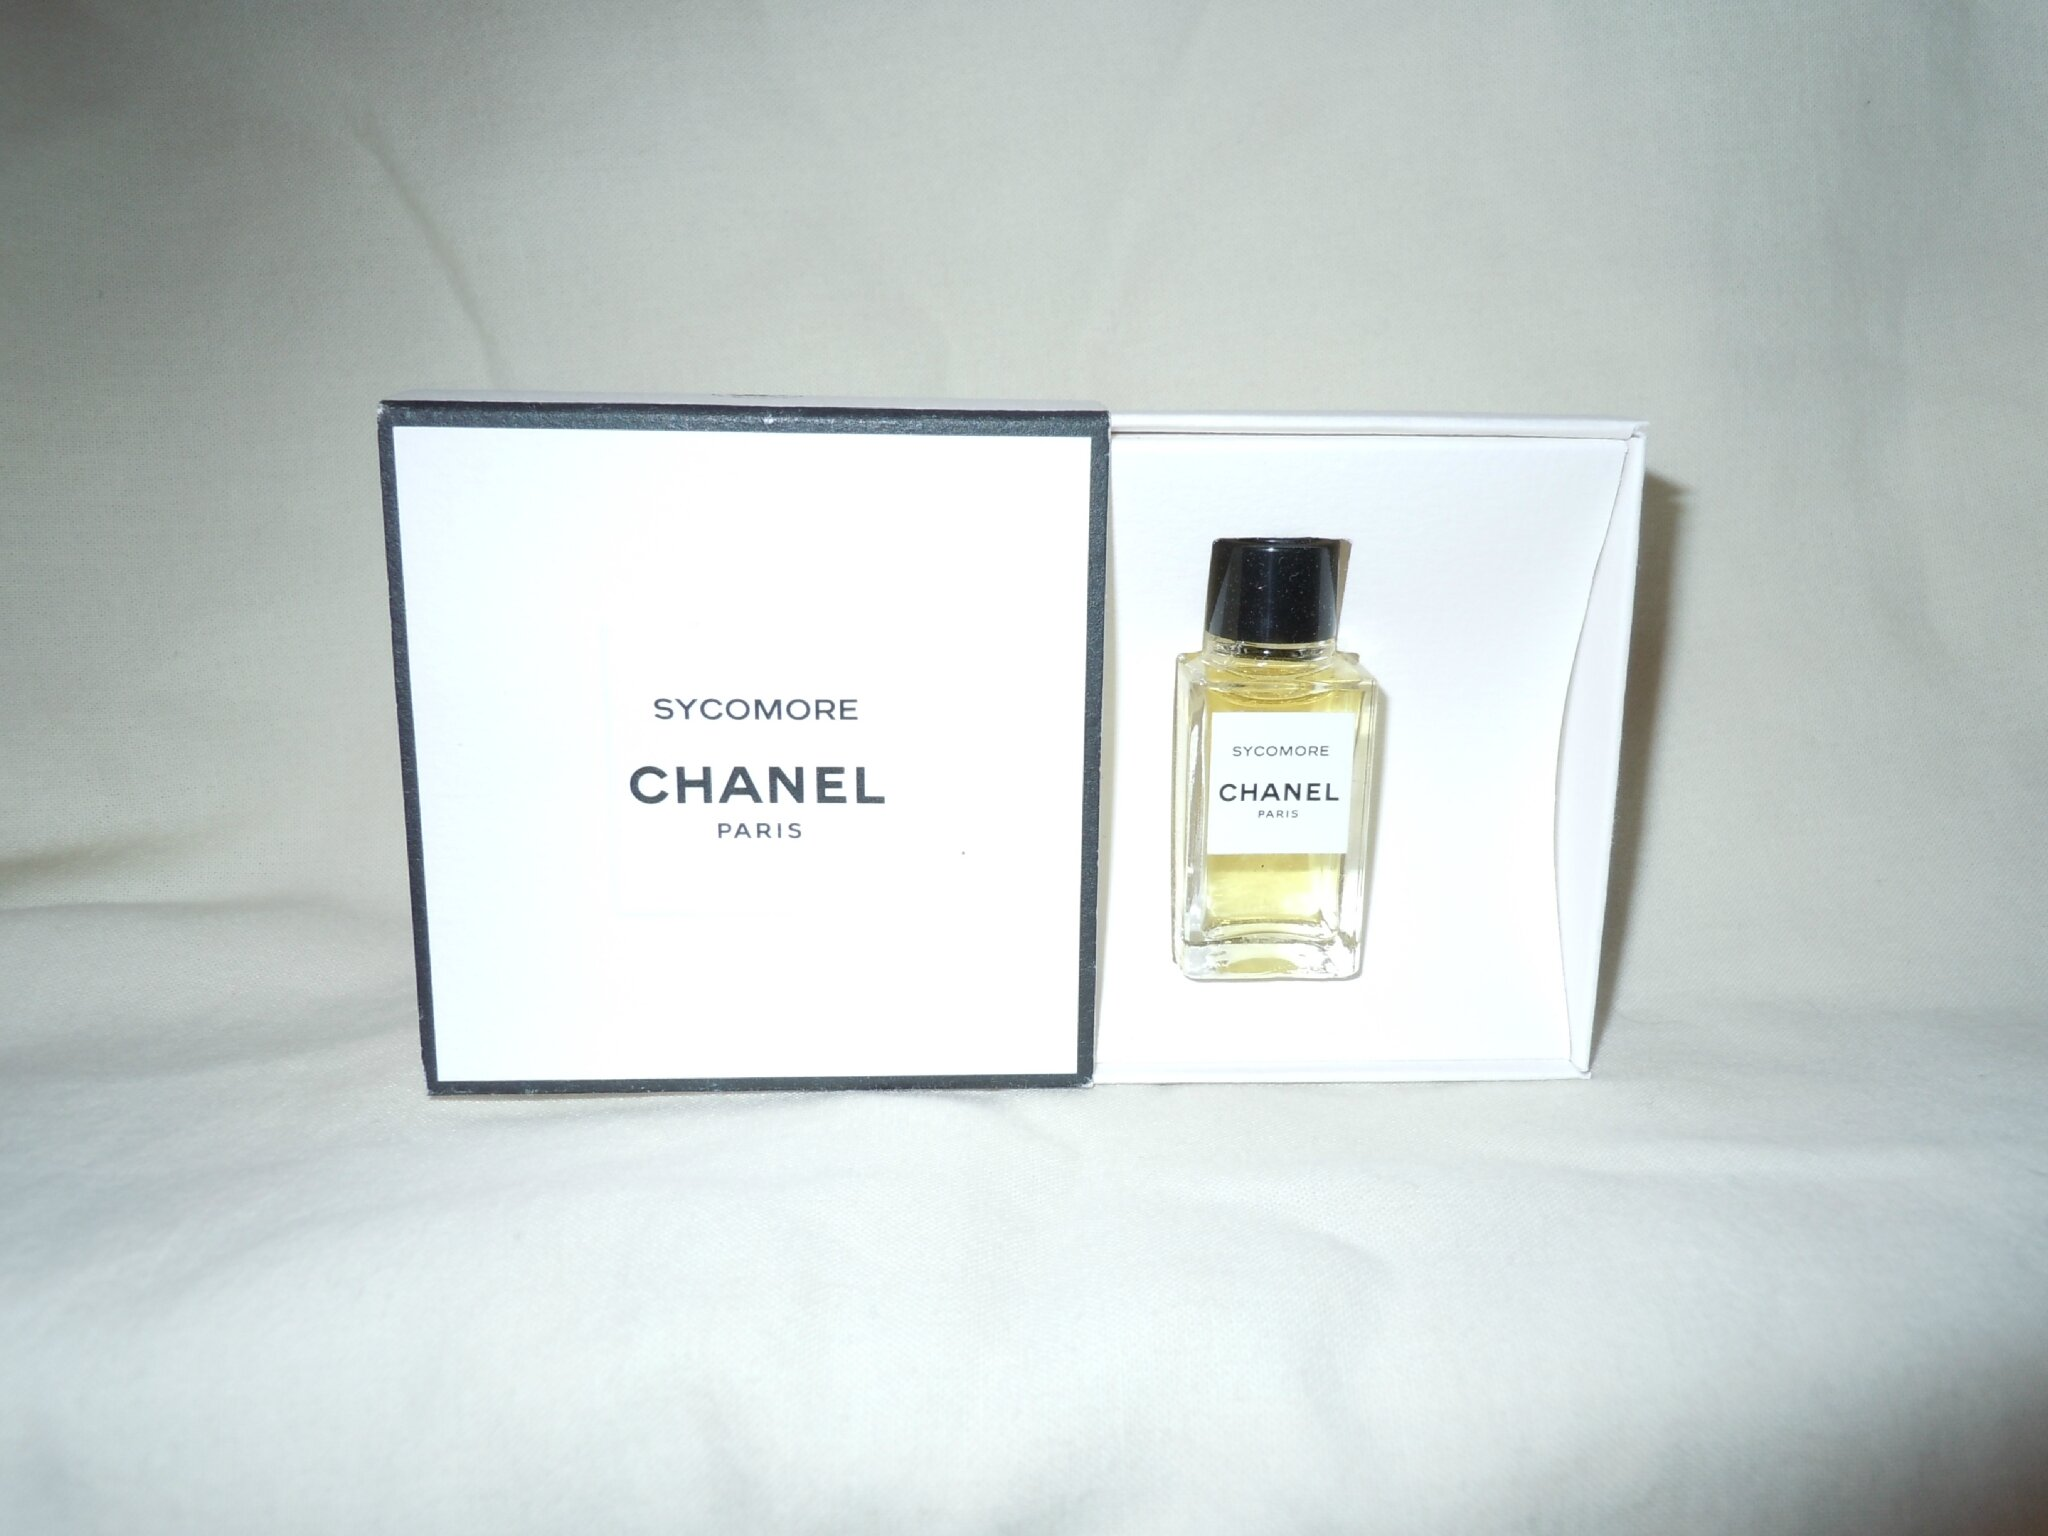 CHANEL-SYCOMORE-LESEXCLUSIFS-BTEINDIVIDUELLE